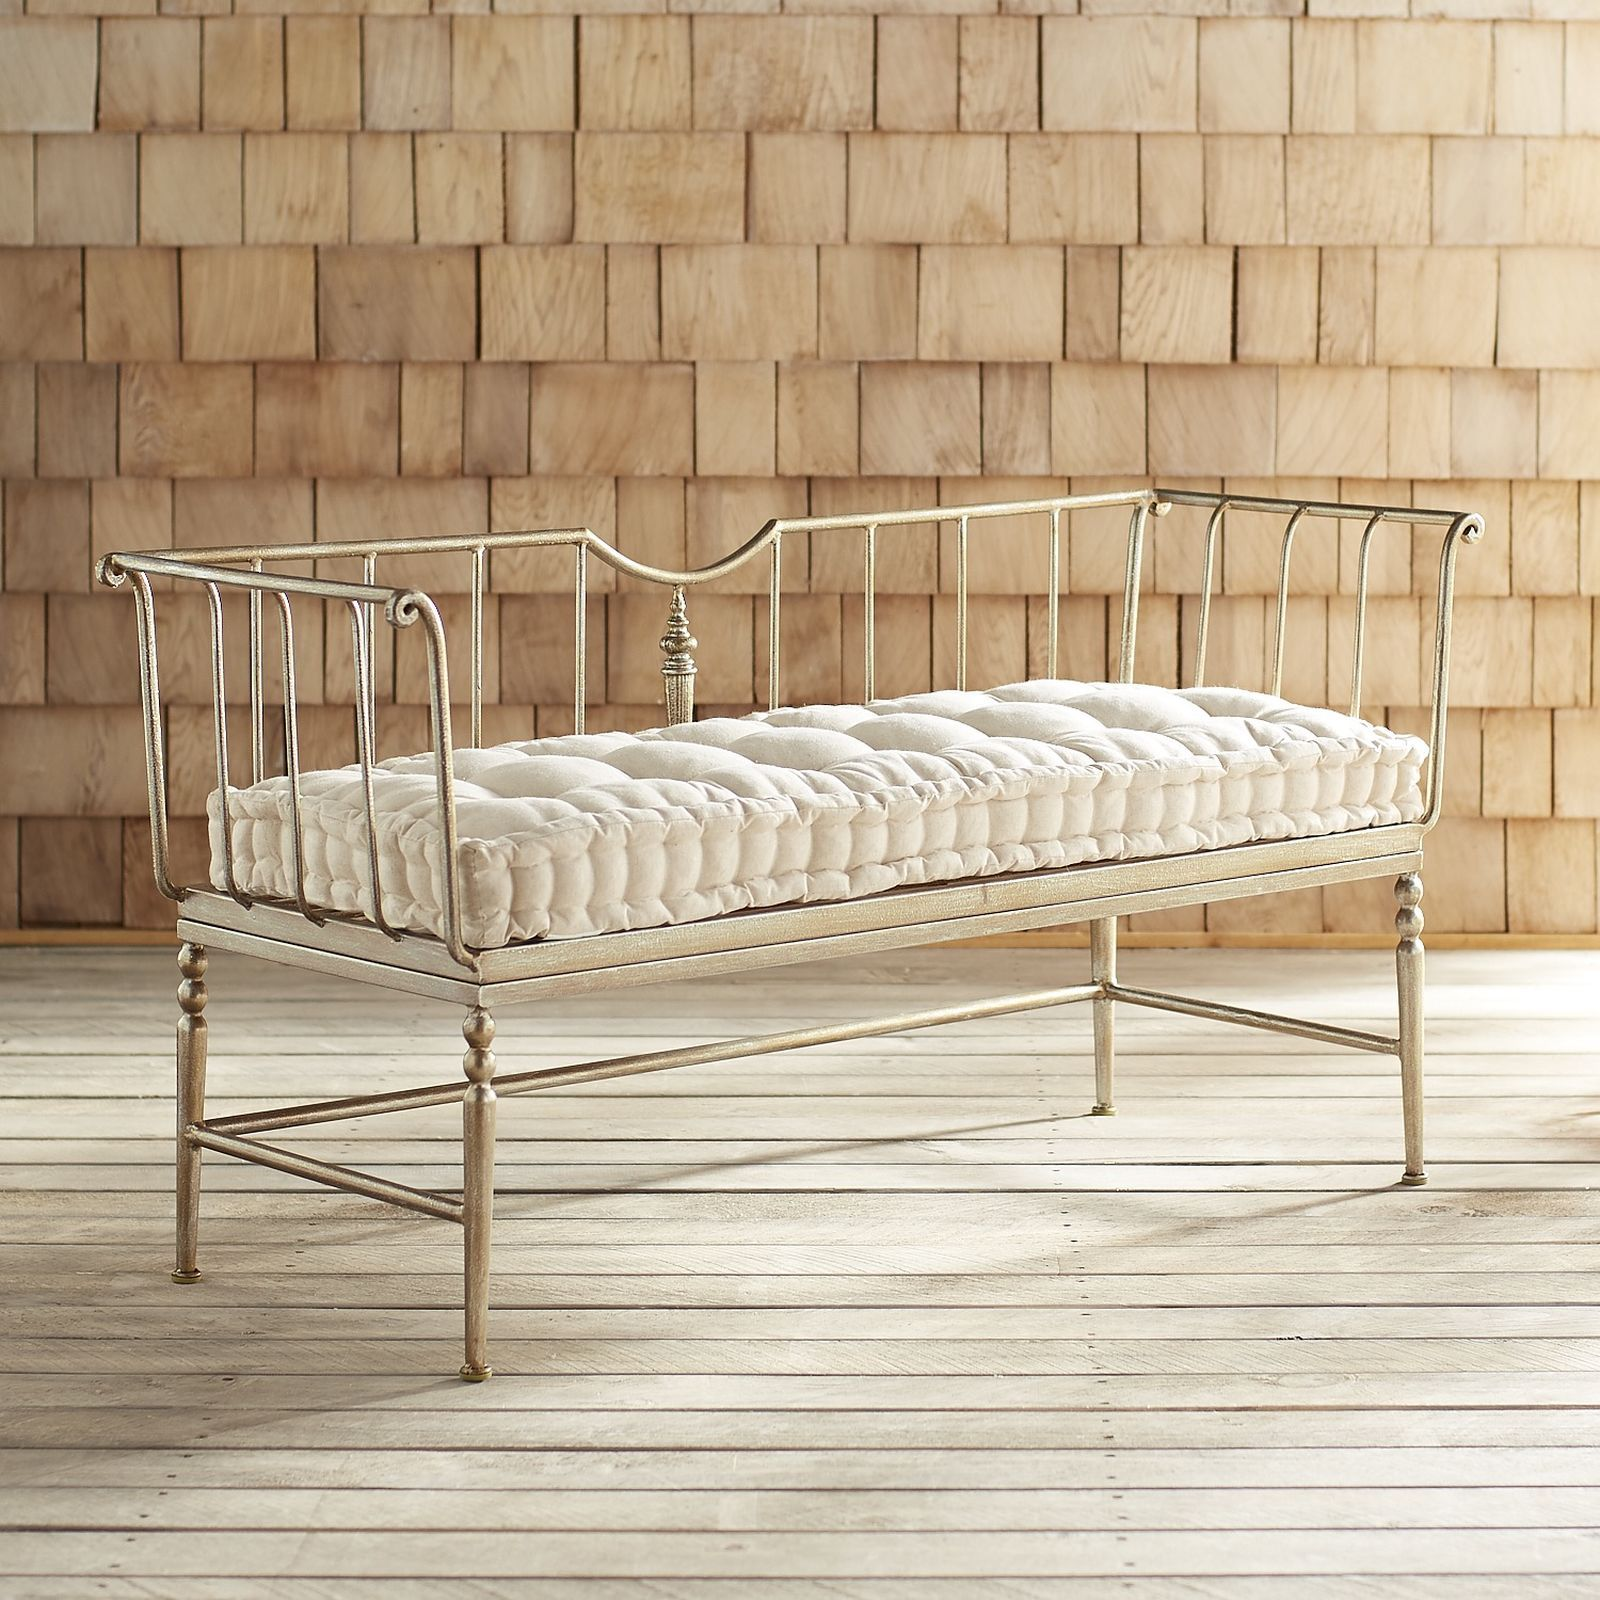 Darcey Bench | Benches for sale, Iron bench, Furniture sale